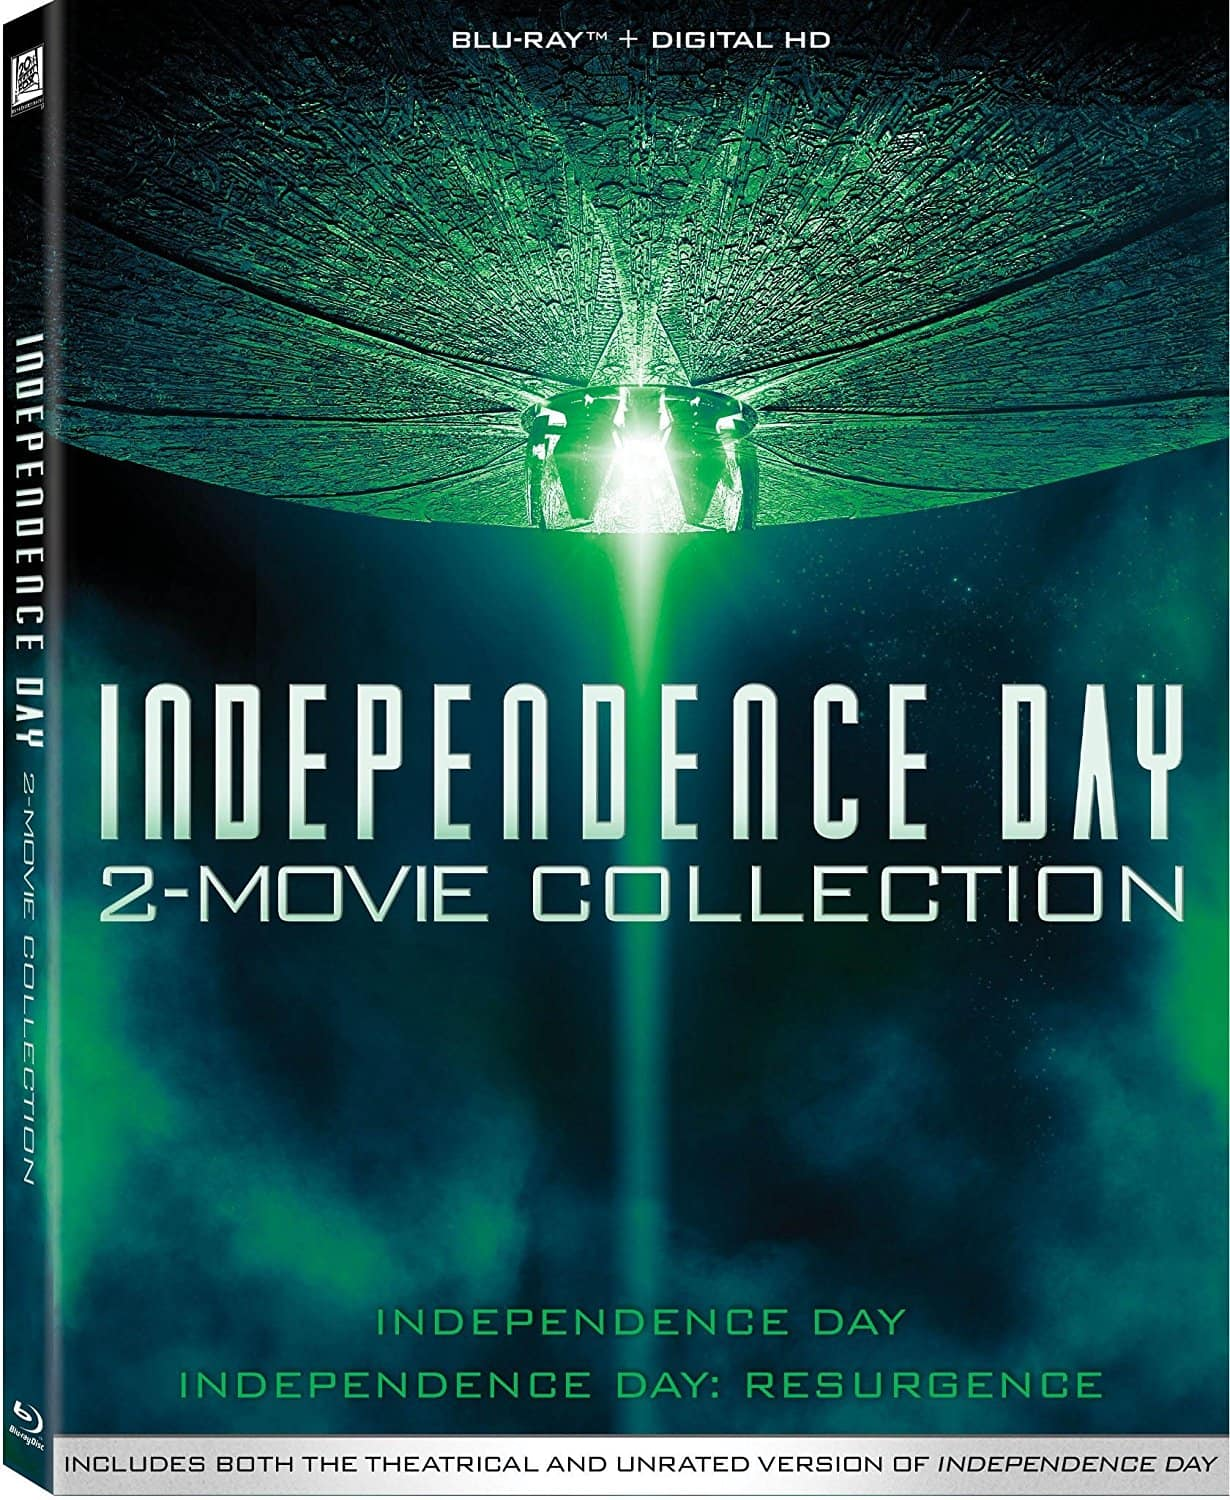 Independence Day + Independence Day: Resurgence (Blu-Ray + Digital HD) $9.96 via Amazon/Best Buy